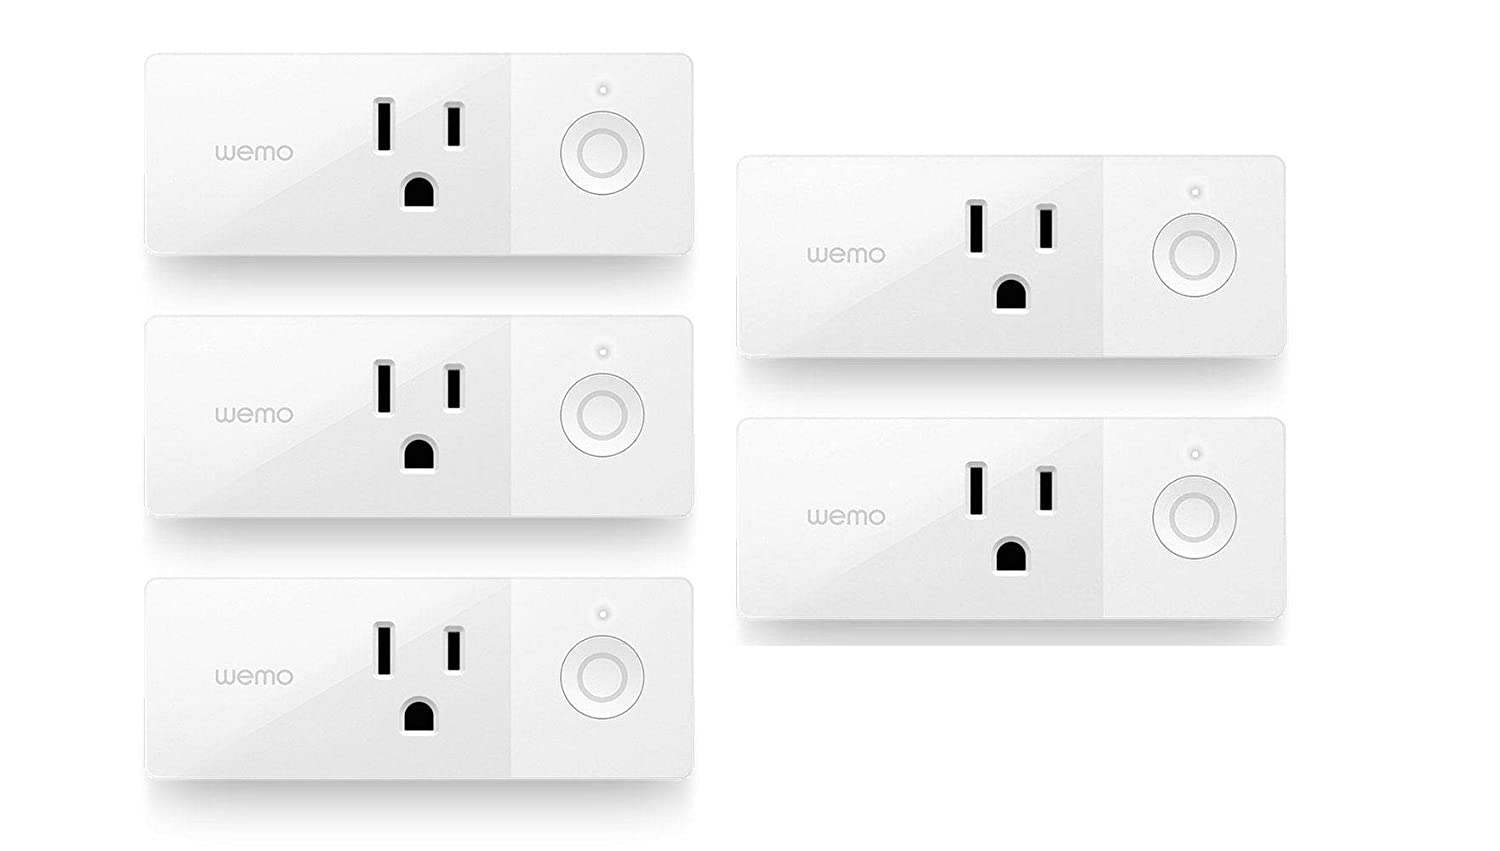 Wemo Mini Smart Plug, Wi-Fi Enabled, Compatible with Alexa (F7C063-RM2) (5 pack )(Renewed)